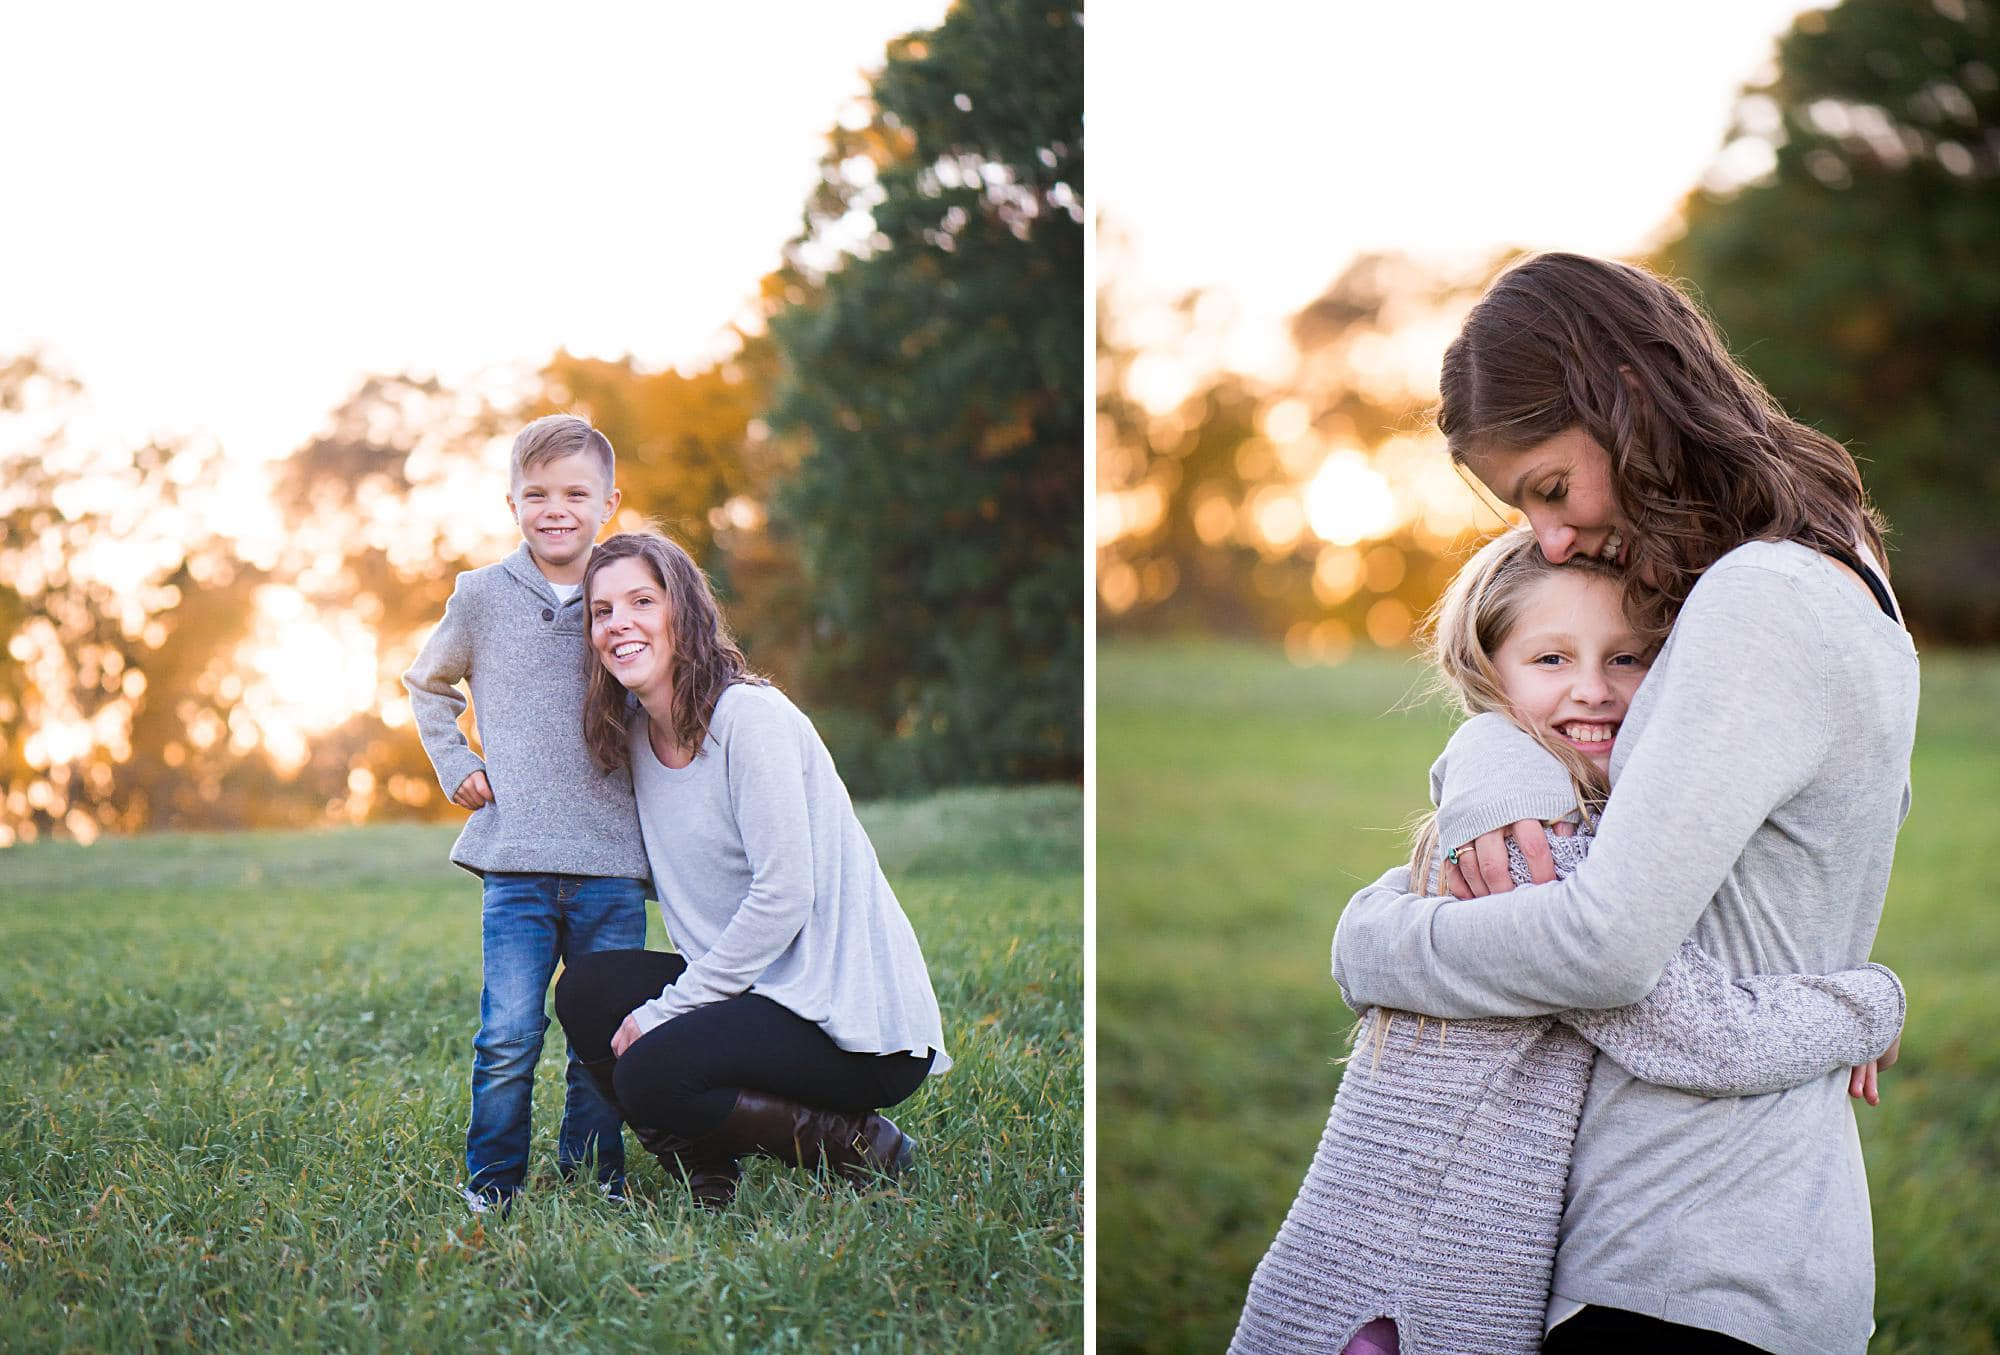 Mom hugging son and daughter outdoor at sunset